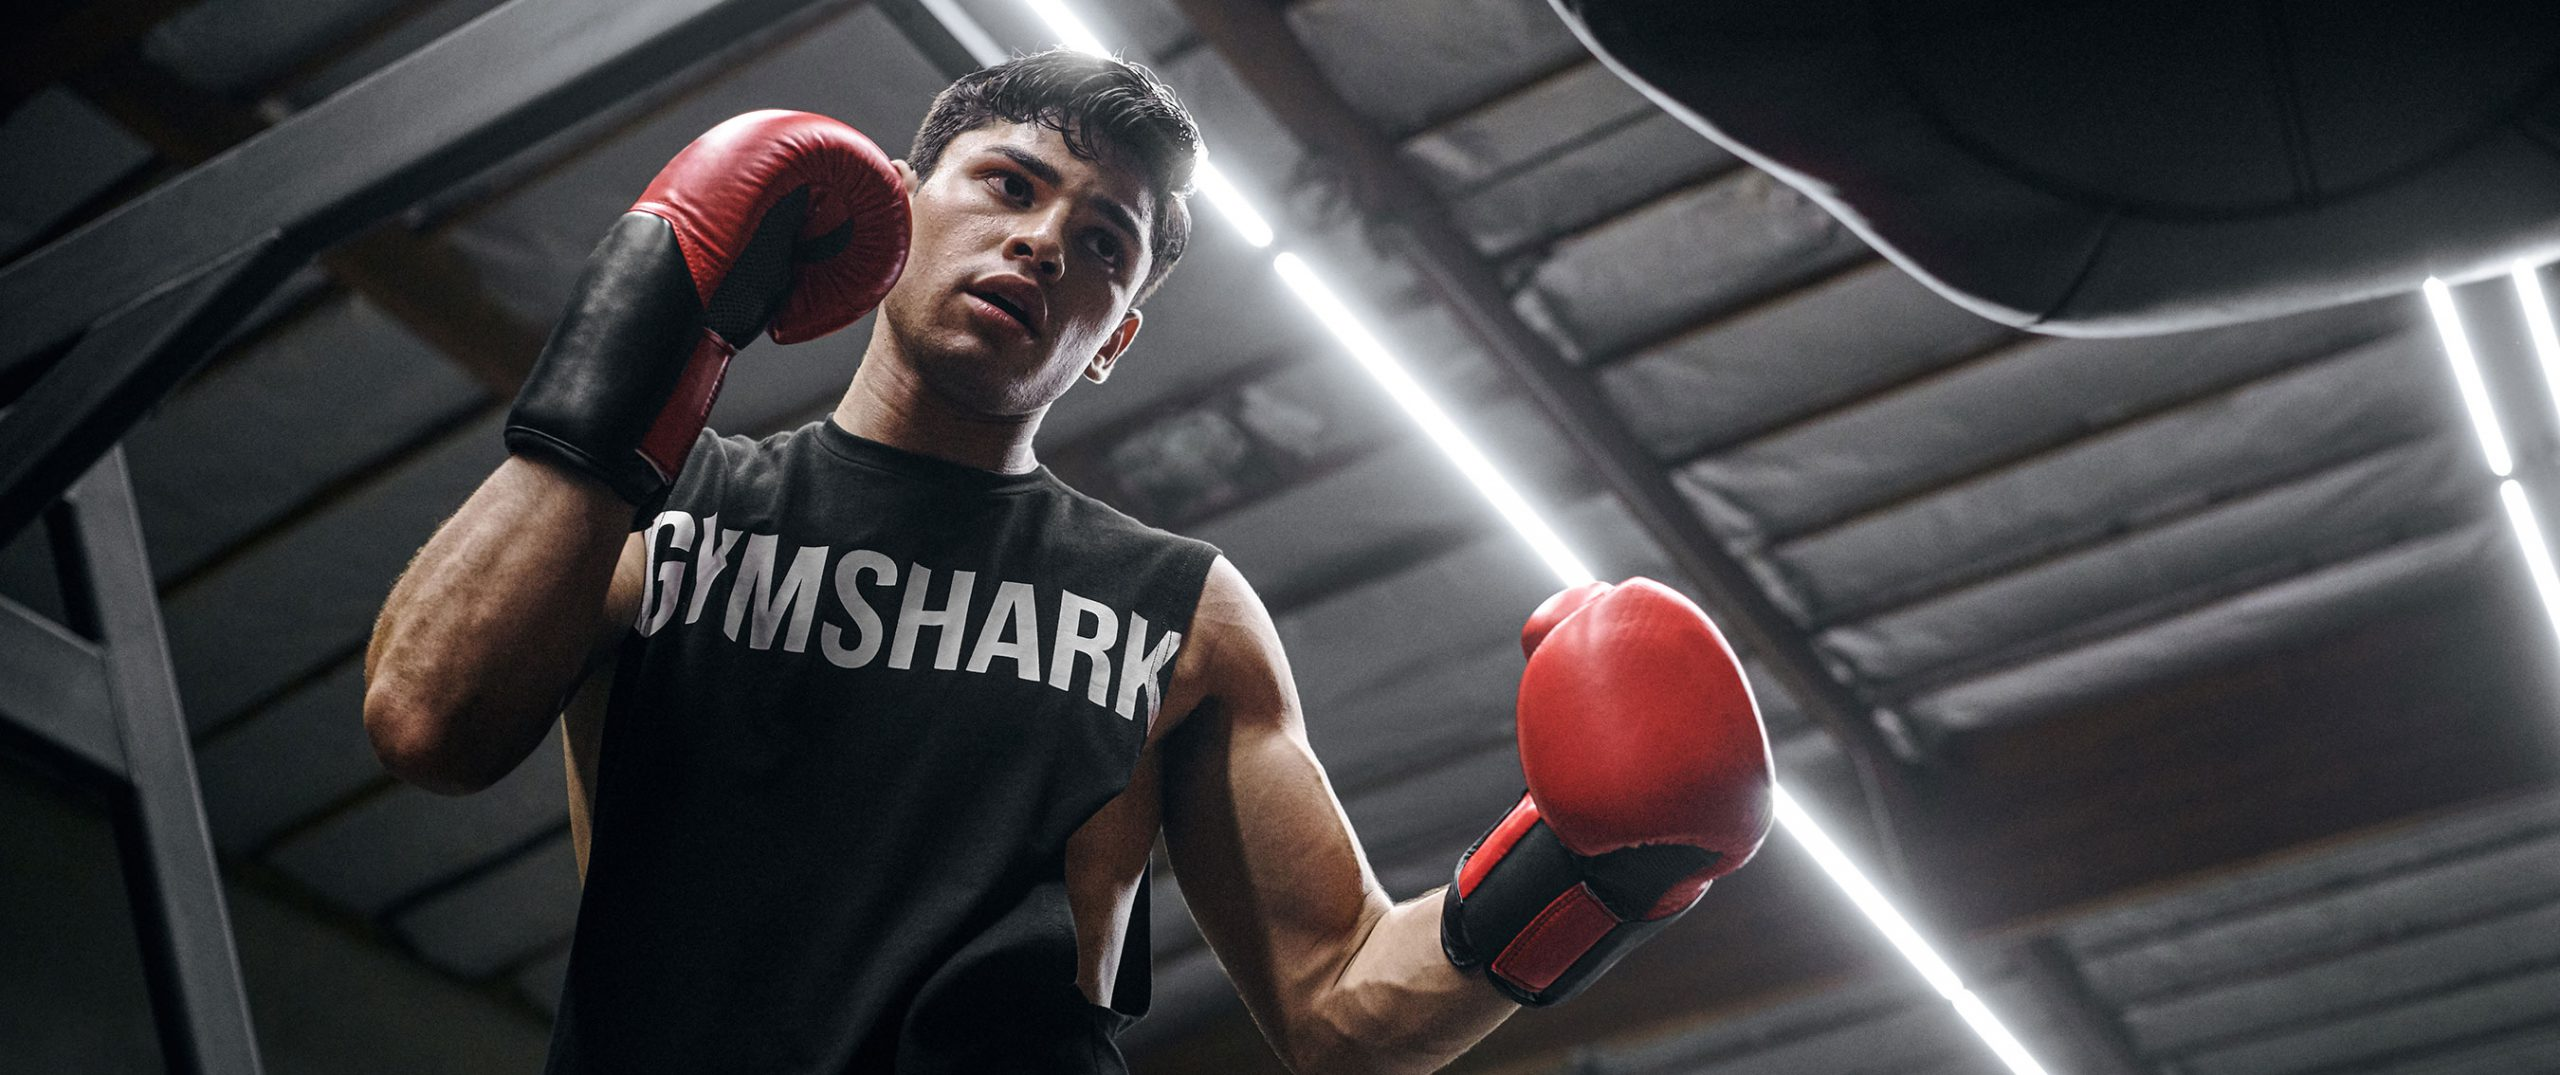 How Gymshark used Iconosquare to improve engagement rates on their posts by over 30%